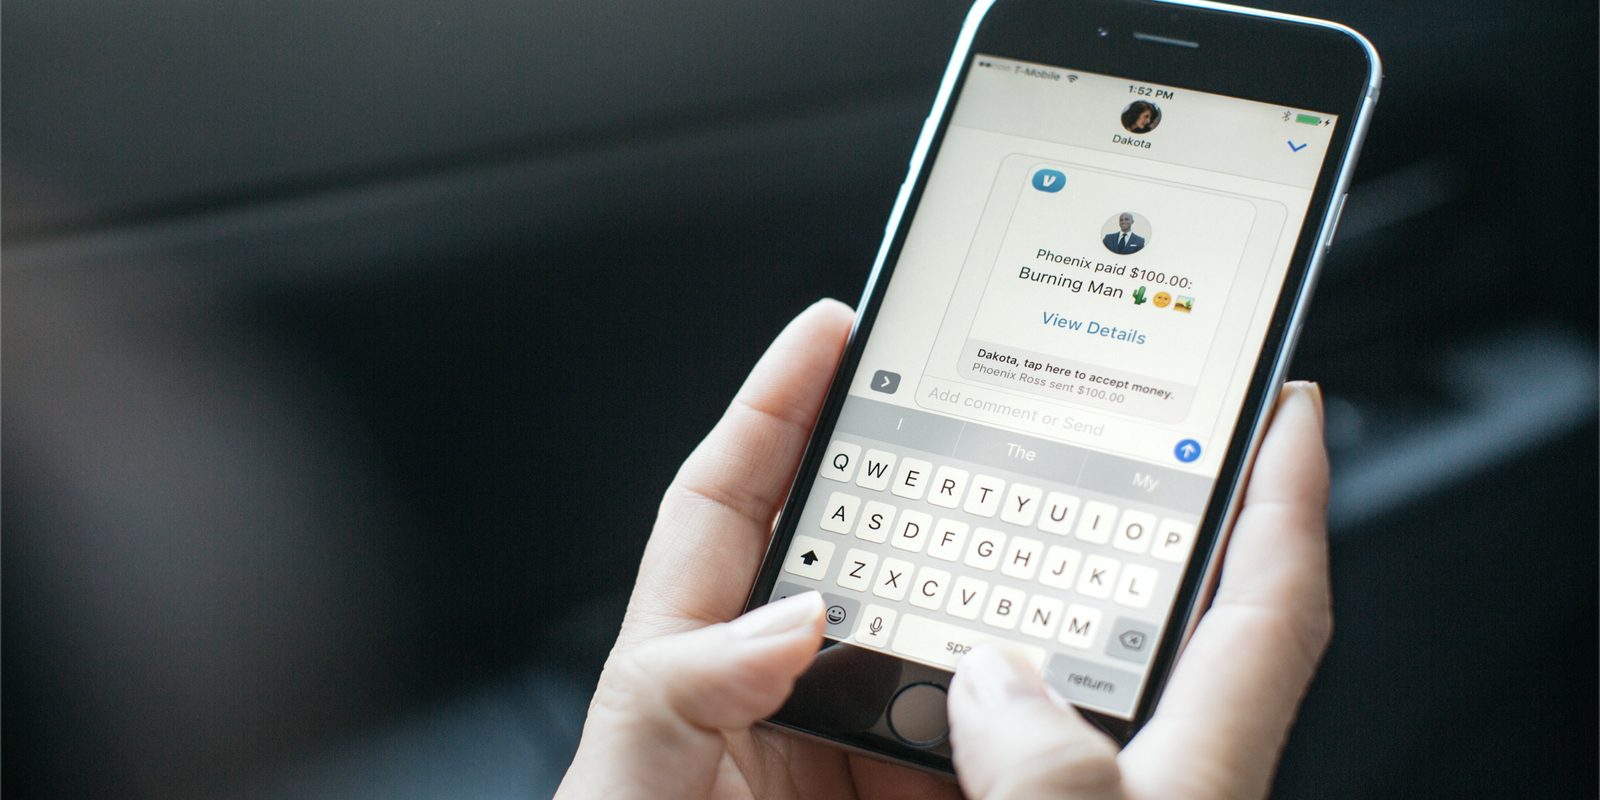 Venmo did what with my data? My location was shared when I paid with the app